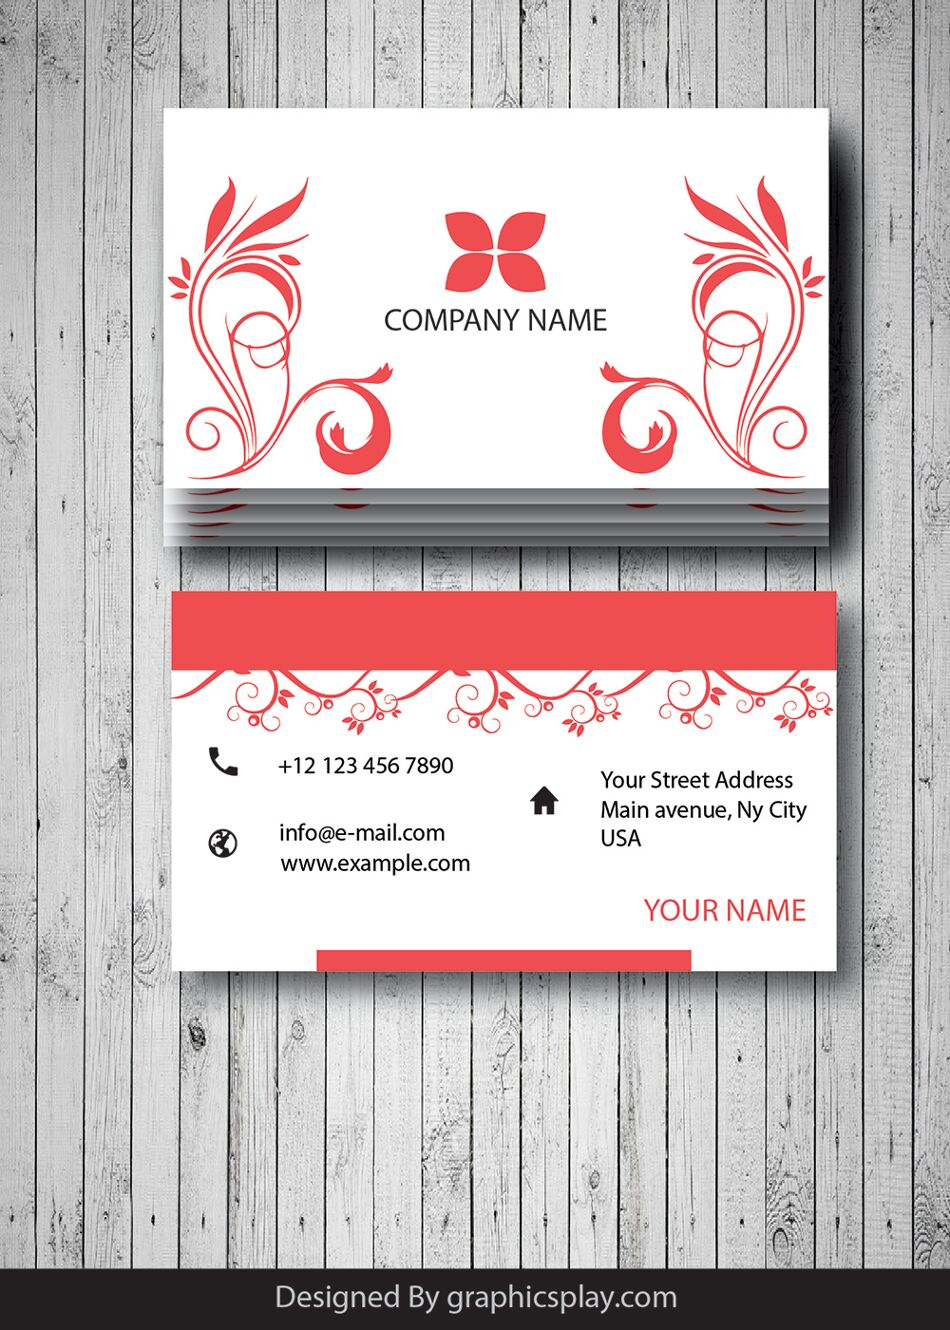 Business Card Design Vector Template - ID 1699 1